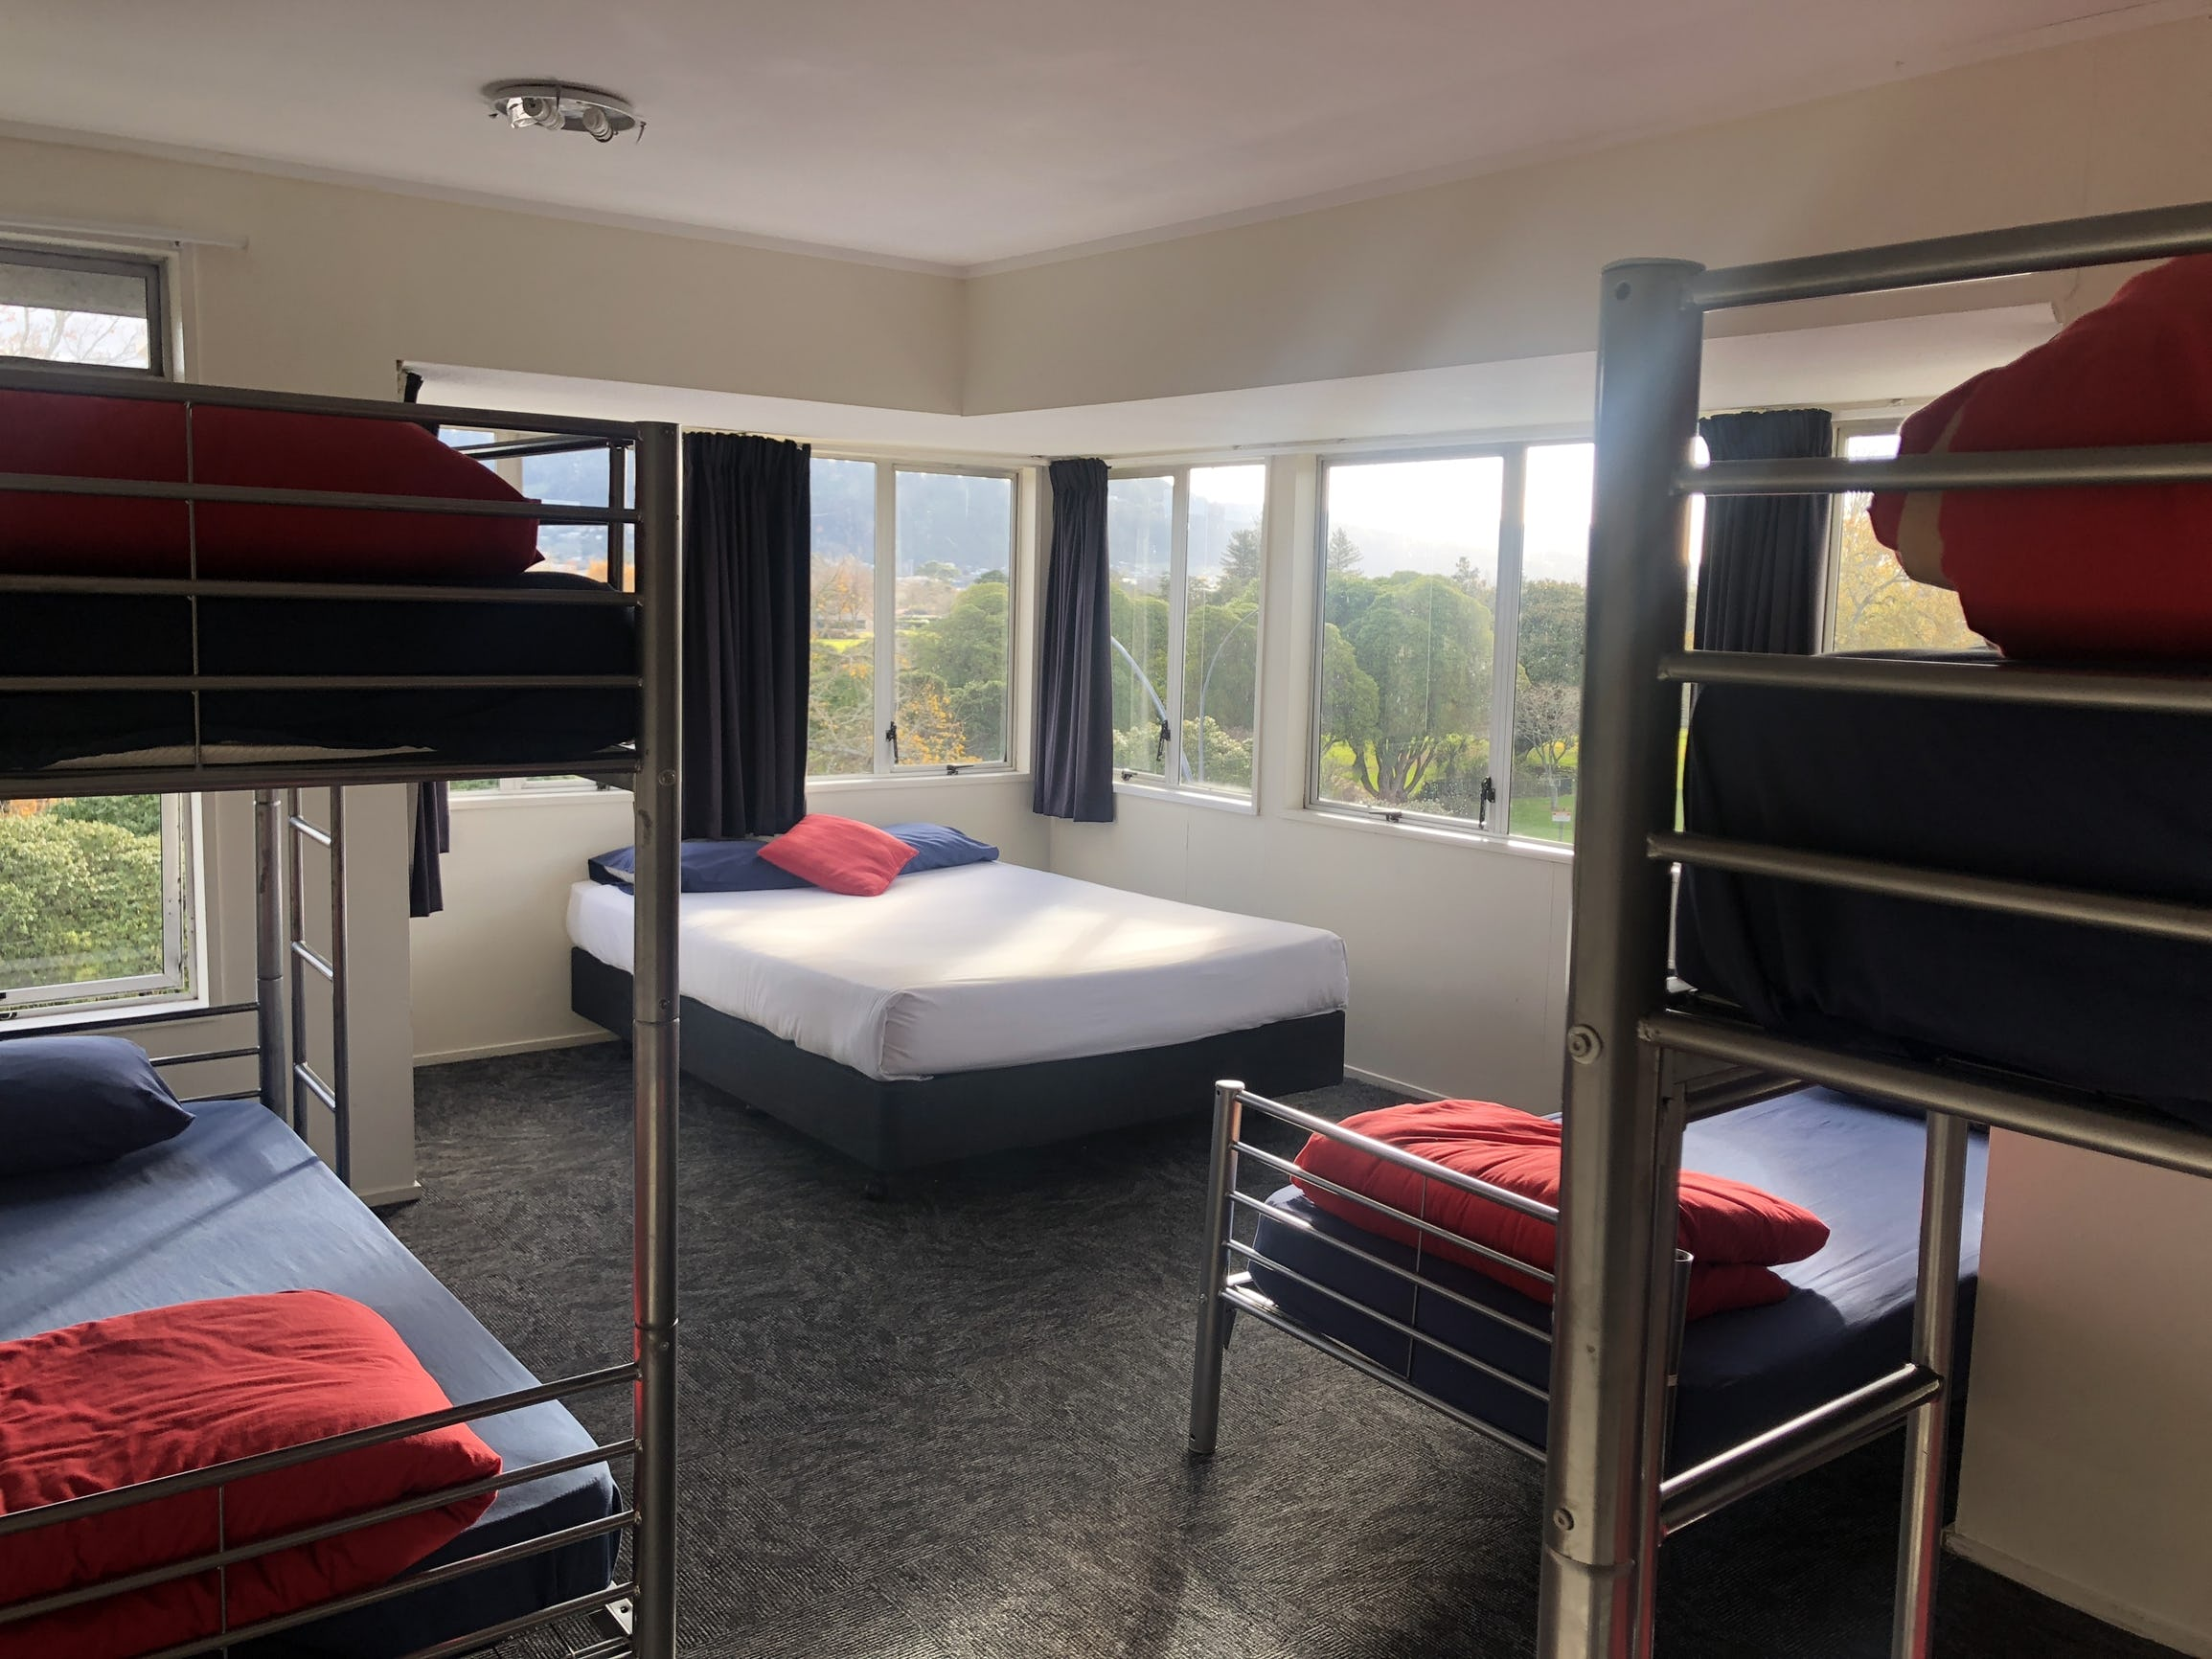 6 bed shared stay space at base rotorua accommodation